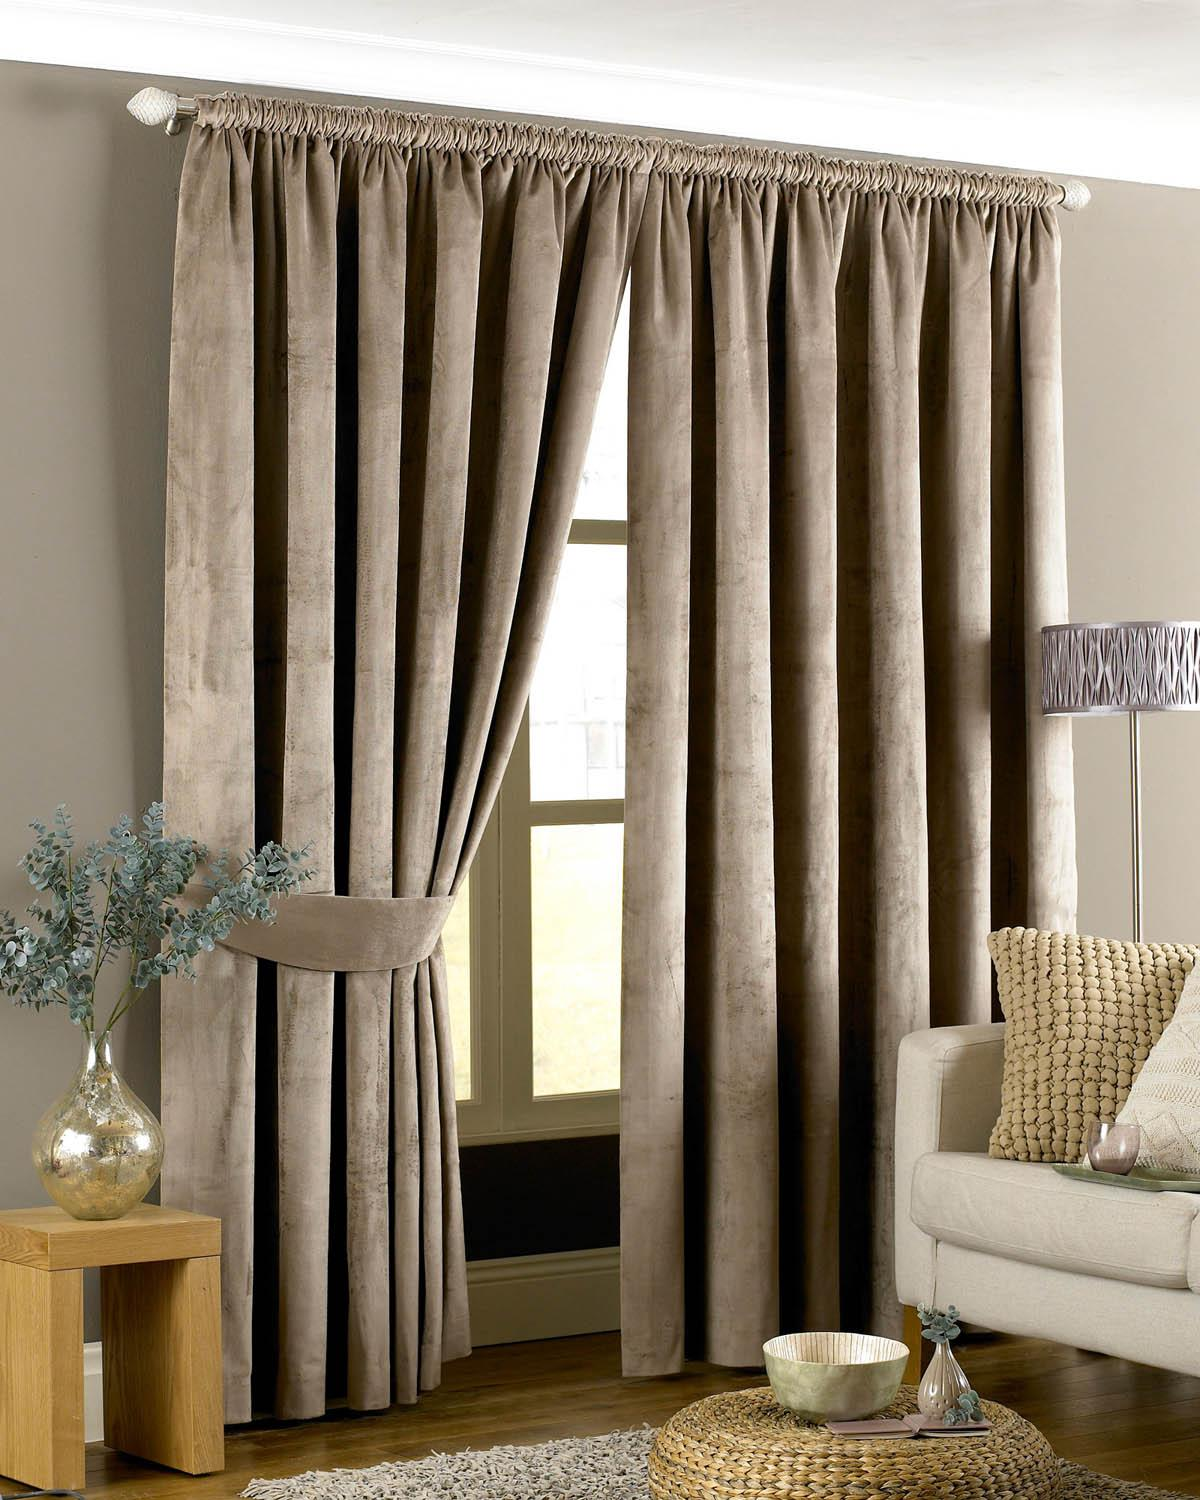 Emperor Ready Made Lined Curtains Taupe Luxury Headed Curtains